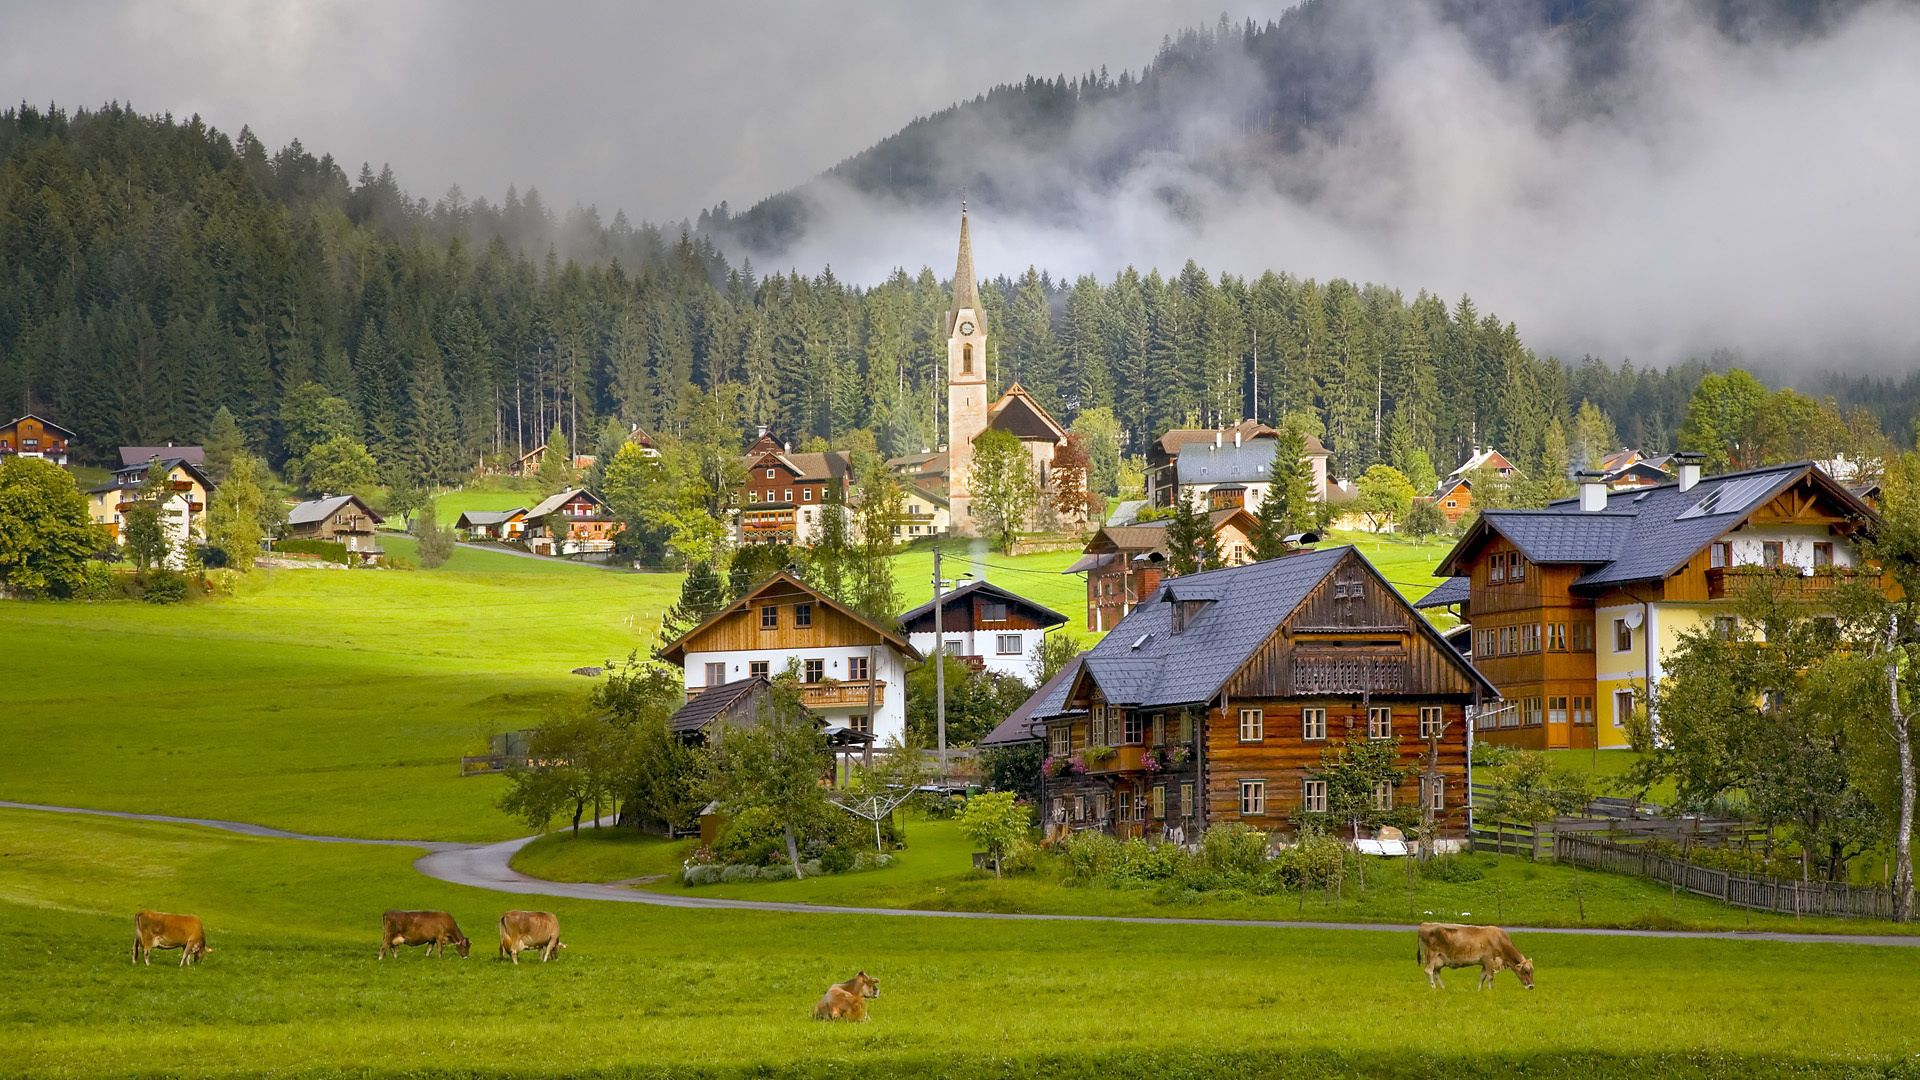 55691 download wallpaper Cities, Houses, Cows, Austria, Village, Gosau, Gozau screensavers and pictures for free